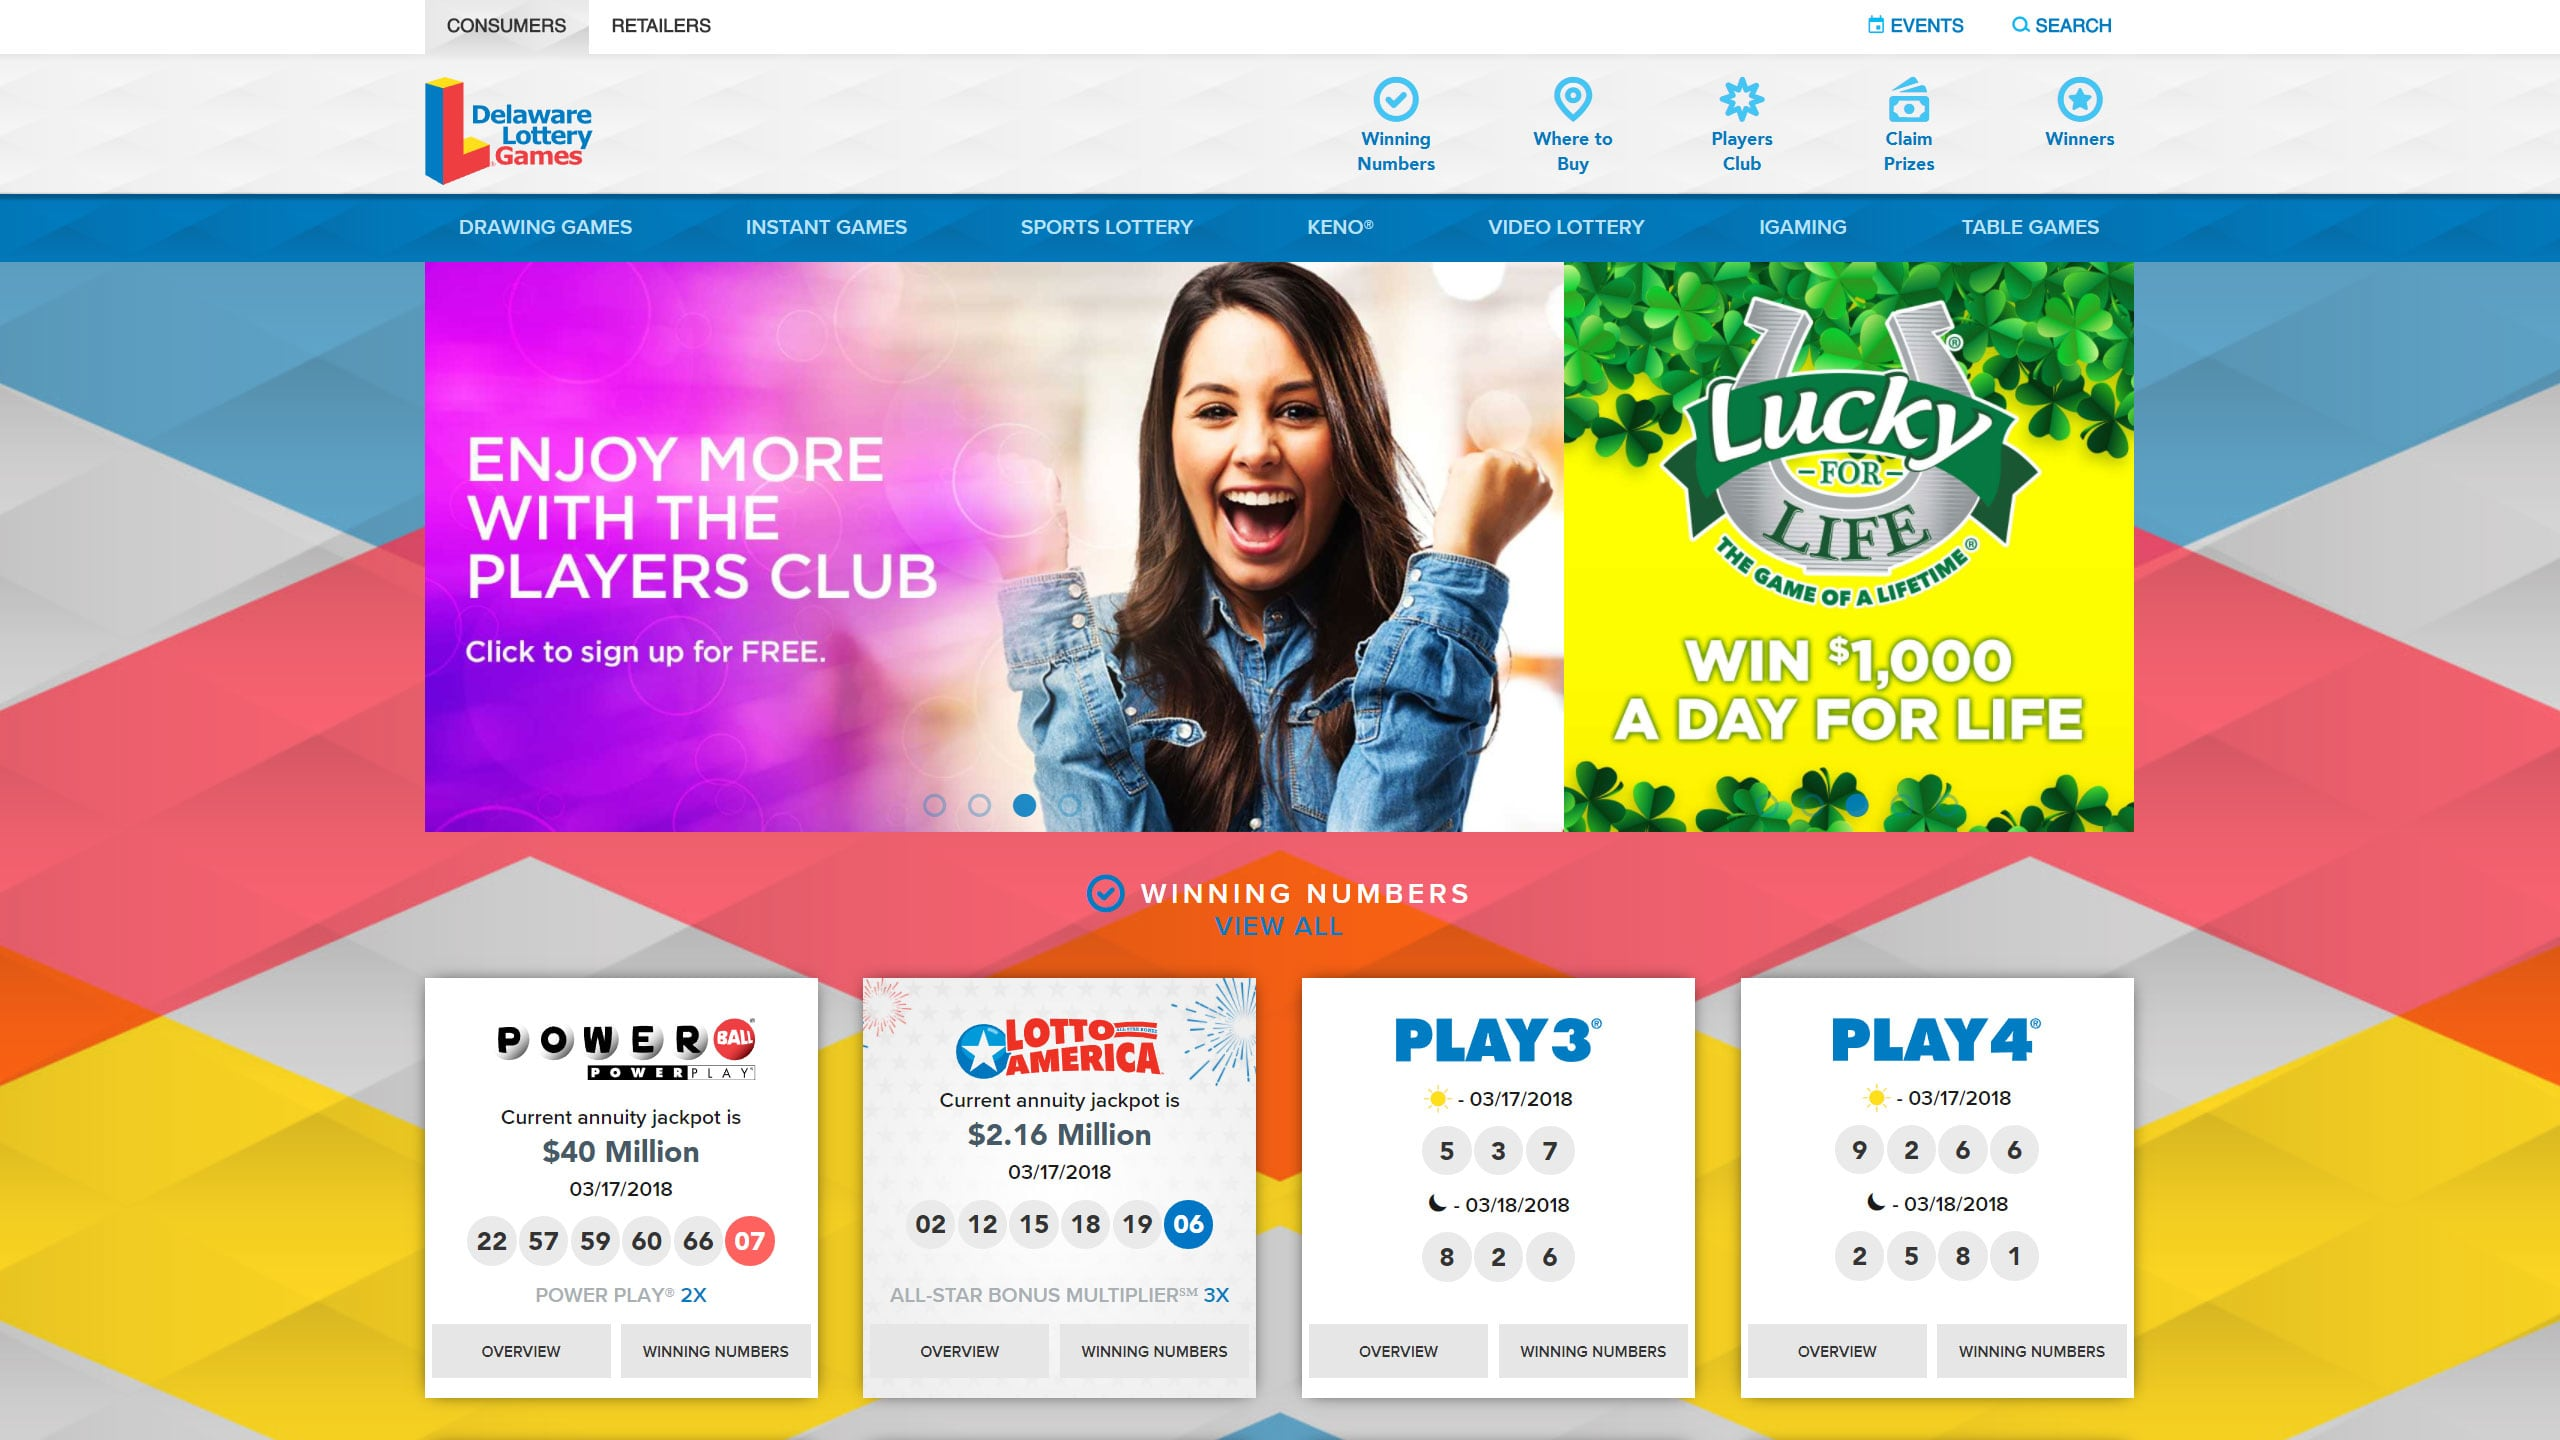 Delaware Lottery Website Redesign